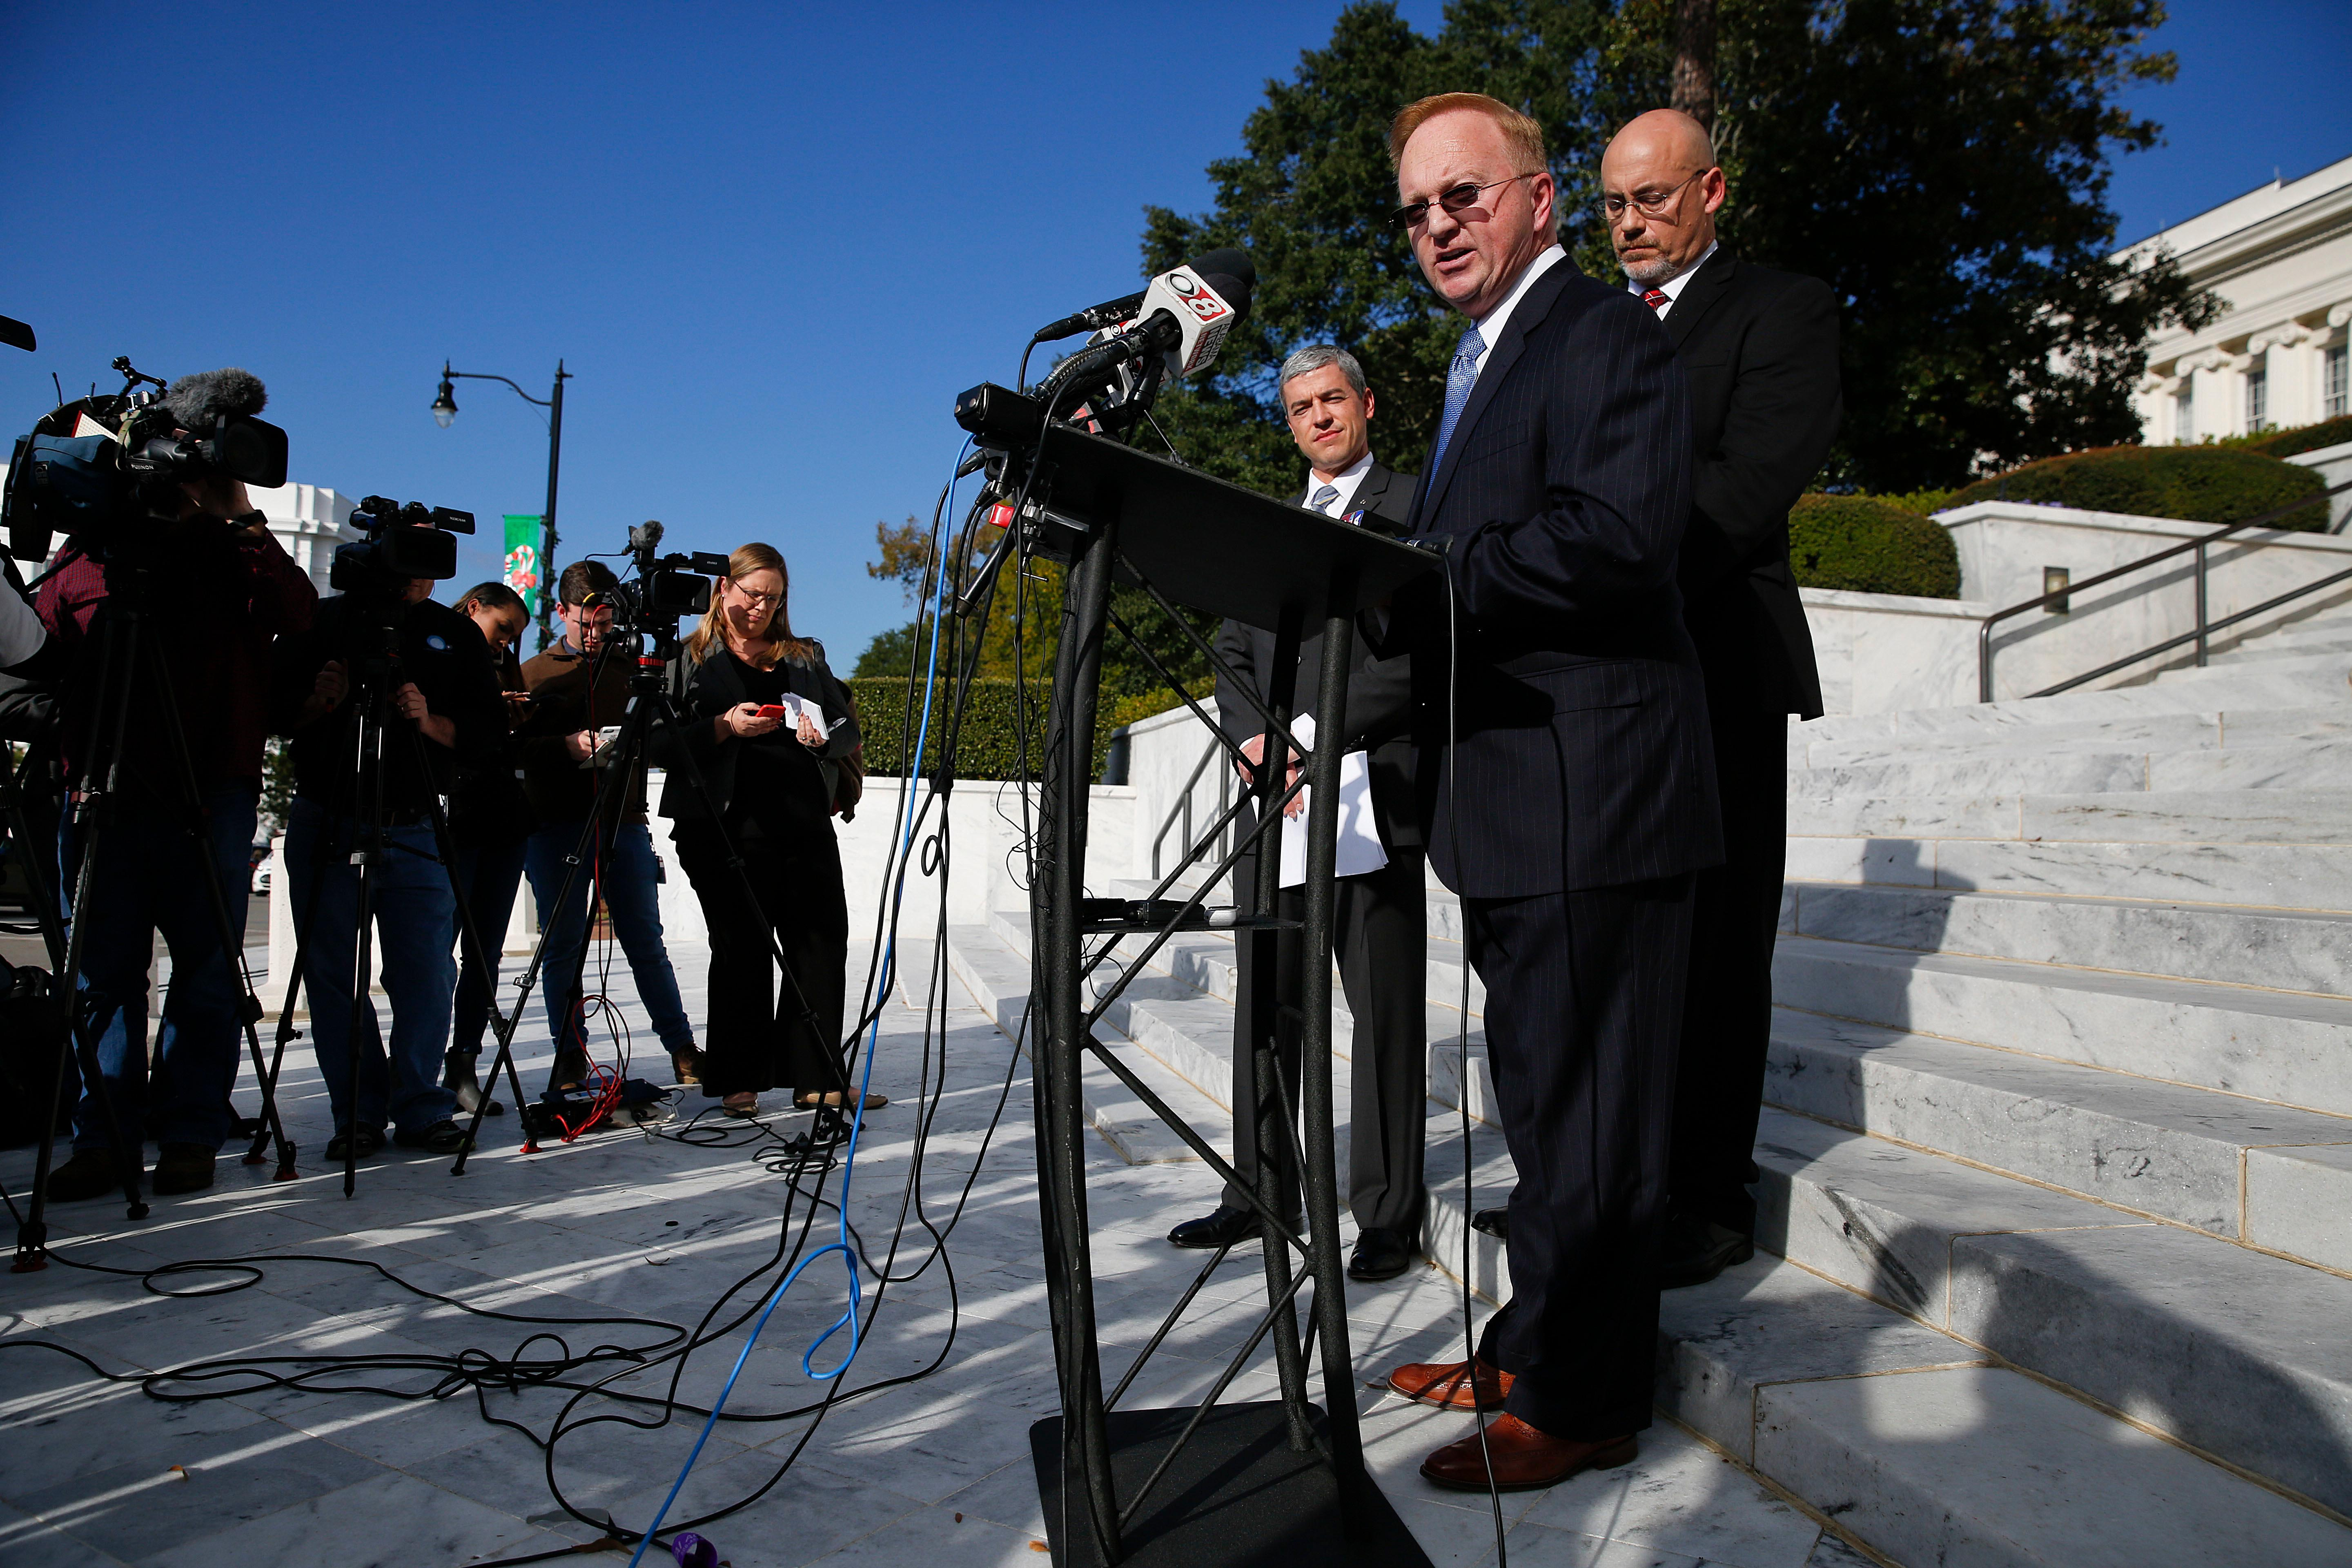 Stan Cooke, center, a member of former Alabama Chief Justice and U.S. Senate candidate Roy Moore's campaign, speaks at a news conference, Tuesday, Nov. 21, 2017, in Montgomery, Ala. (AP Photo/Brynn Anderson)